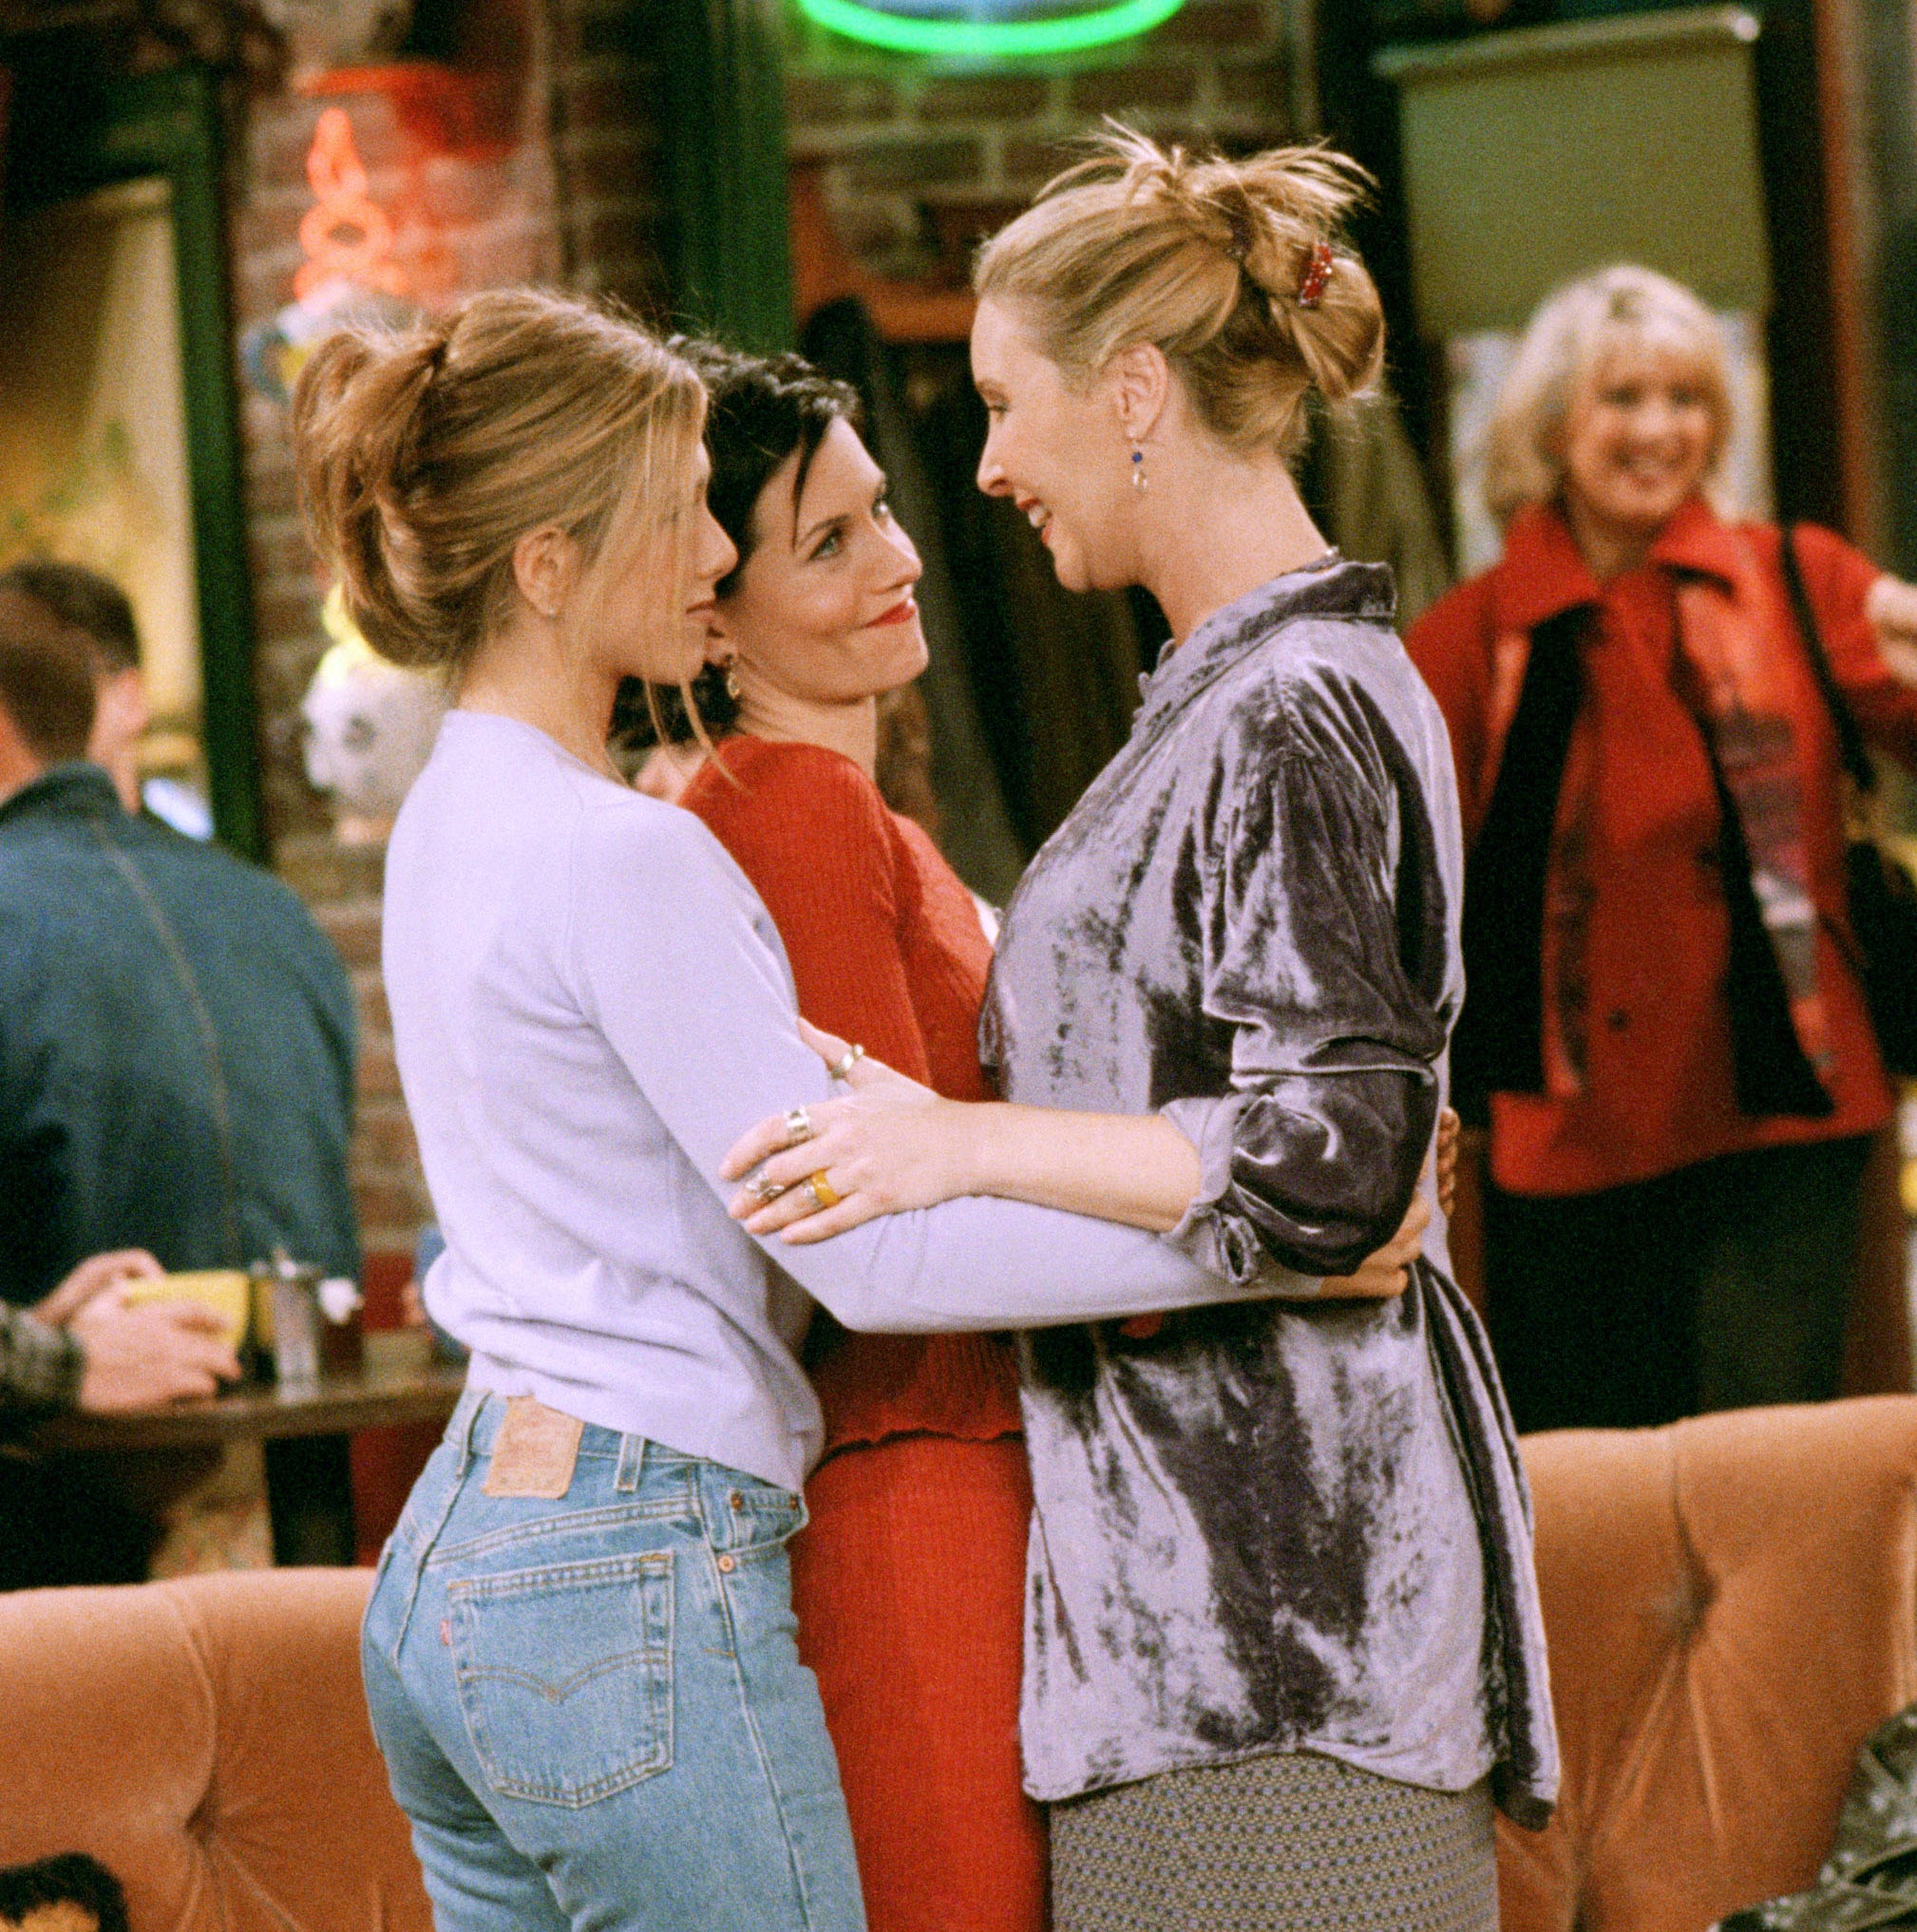 Goodbye, 'Friends'? Netflix lists the sitcom as being available only until 2019.